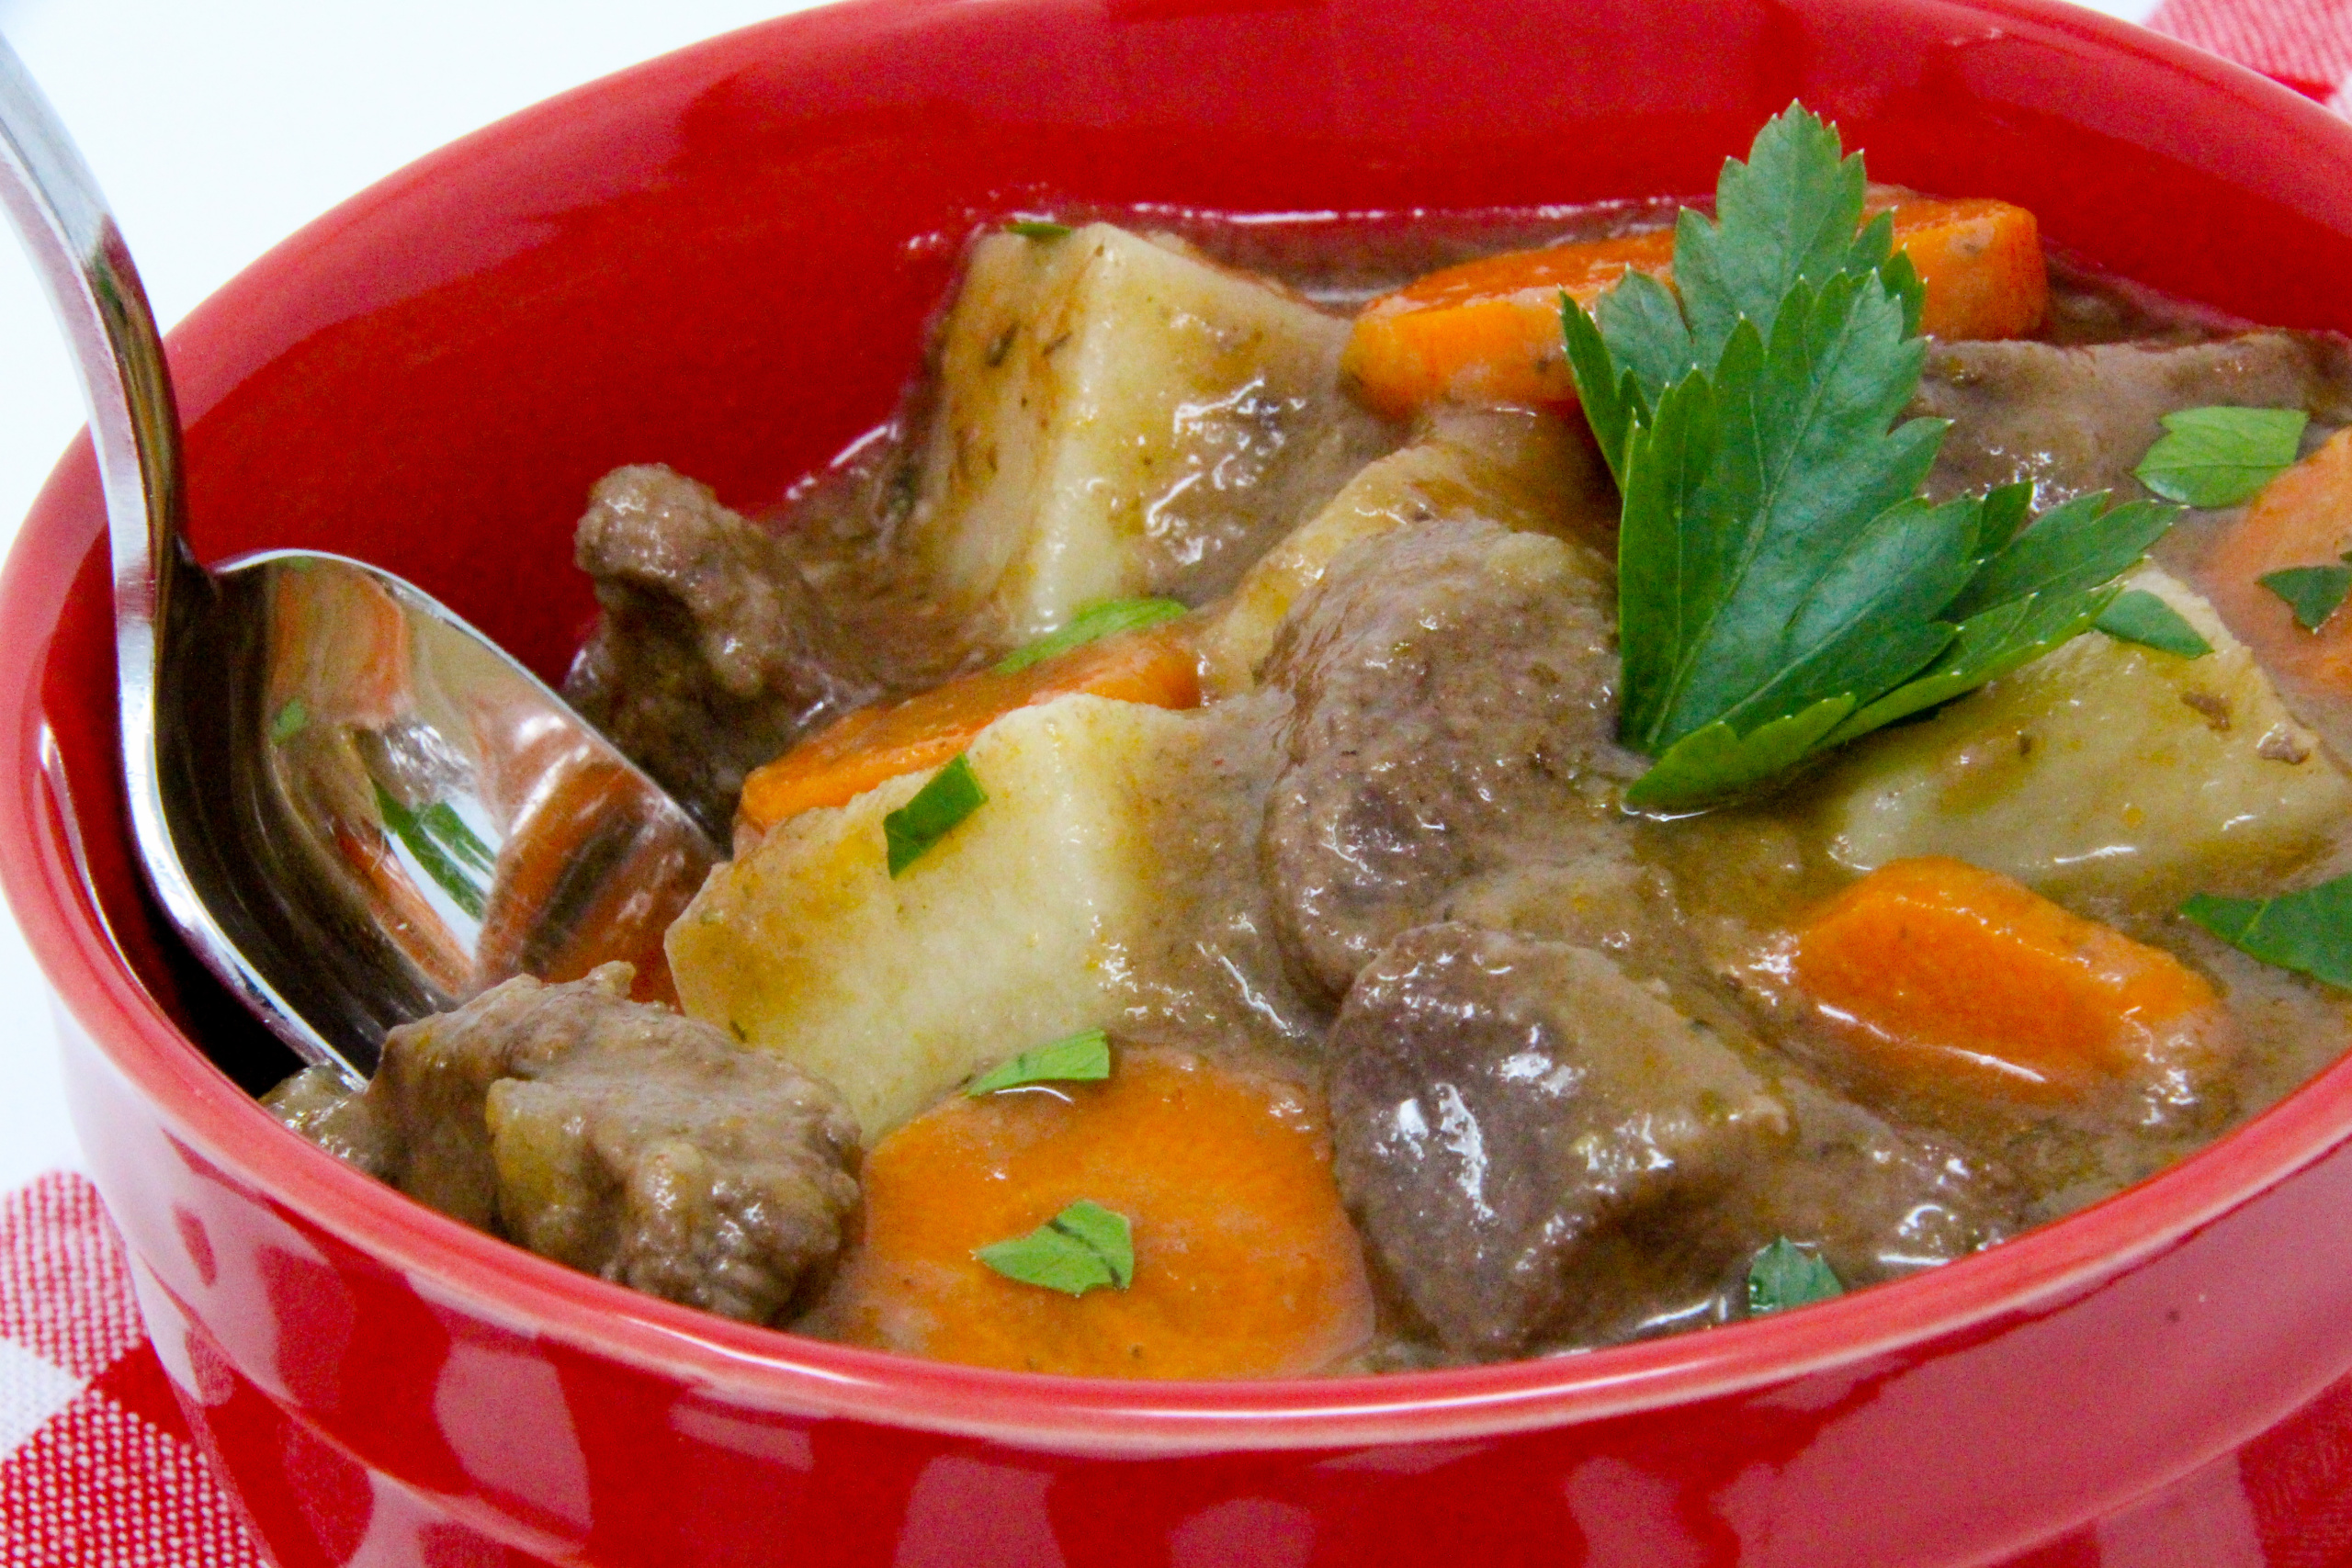 Eoin's Irish Stew is a hearty dish and chock full of flavor. This warming bowl of stew is the perfect dinner for a chilly night or a simple reheat for a filling lunch the next day! Recipe shared with permission granted by Carlene O'Connor, author of MURDER IN AN IRISH BOOKSHOP.